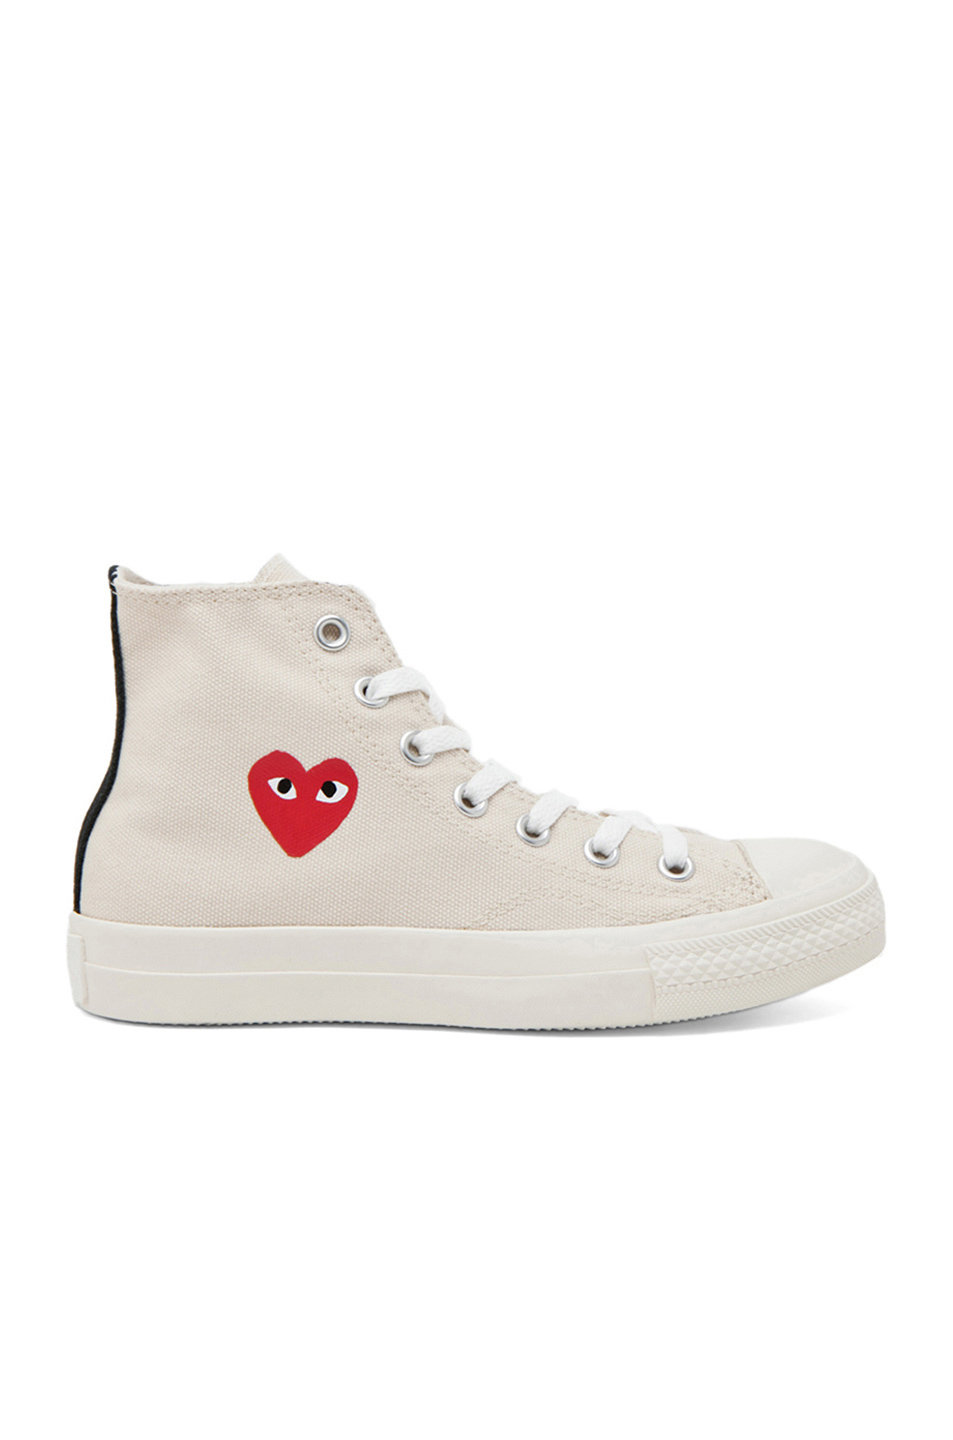 converse high top sneakers outlet  play converse